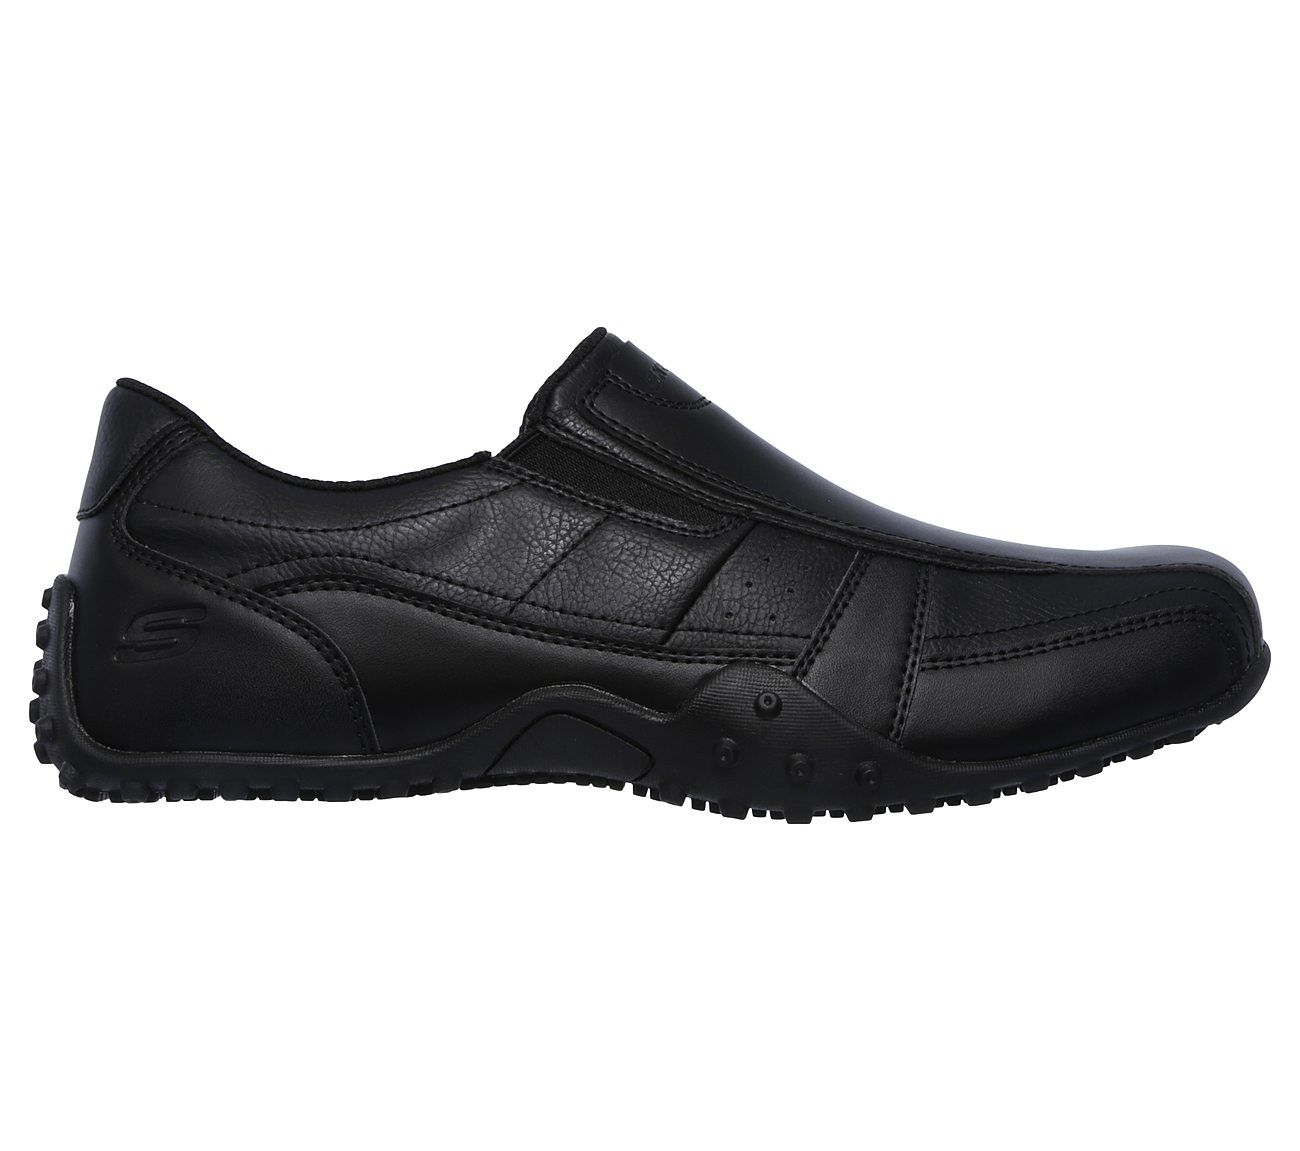 Choosing payless slip resistant shoes for mens you will be provided with high quality service. The process of selection of shoes became fascinating and interesting. You can easily choose for yourself and your family shoes for every day and business style. What payless slip resistant shoes for .